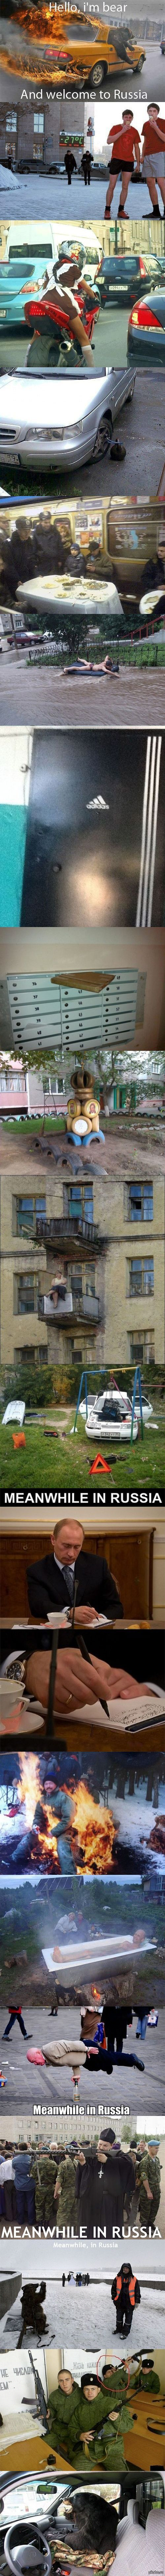 Meanwhile in Russia, been there.  Not surprised at these pix.